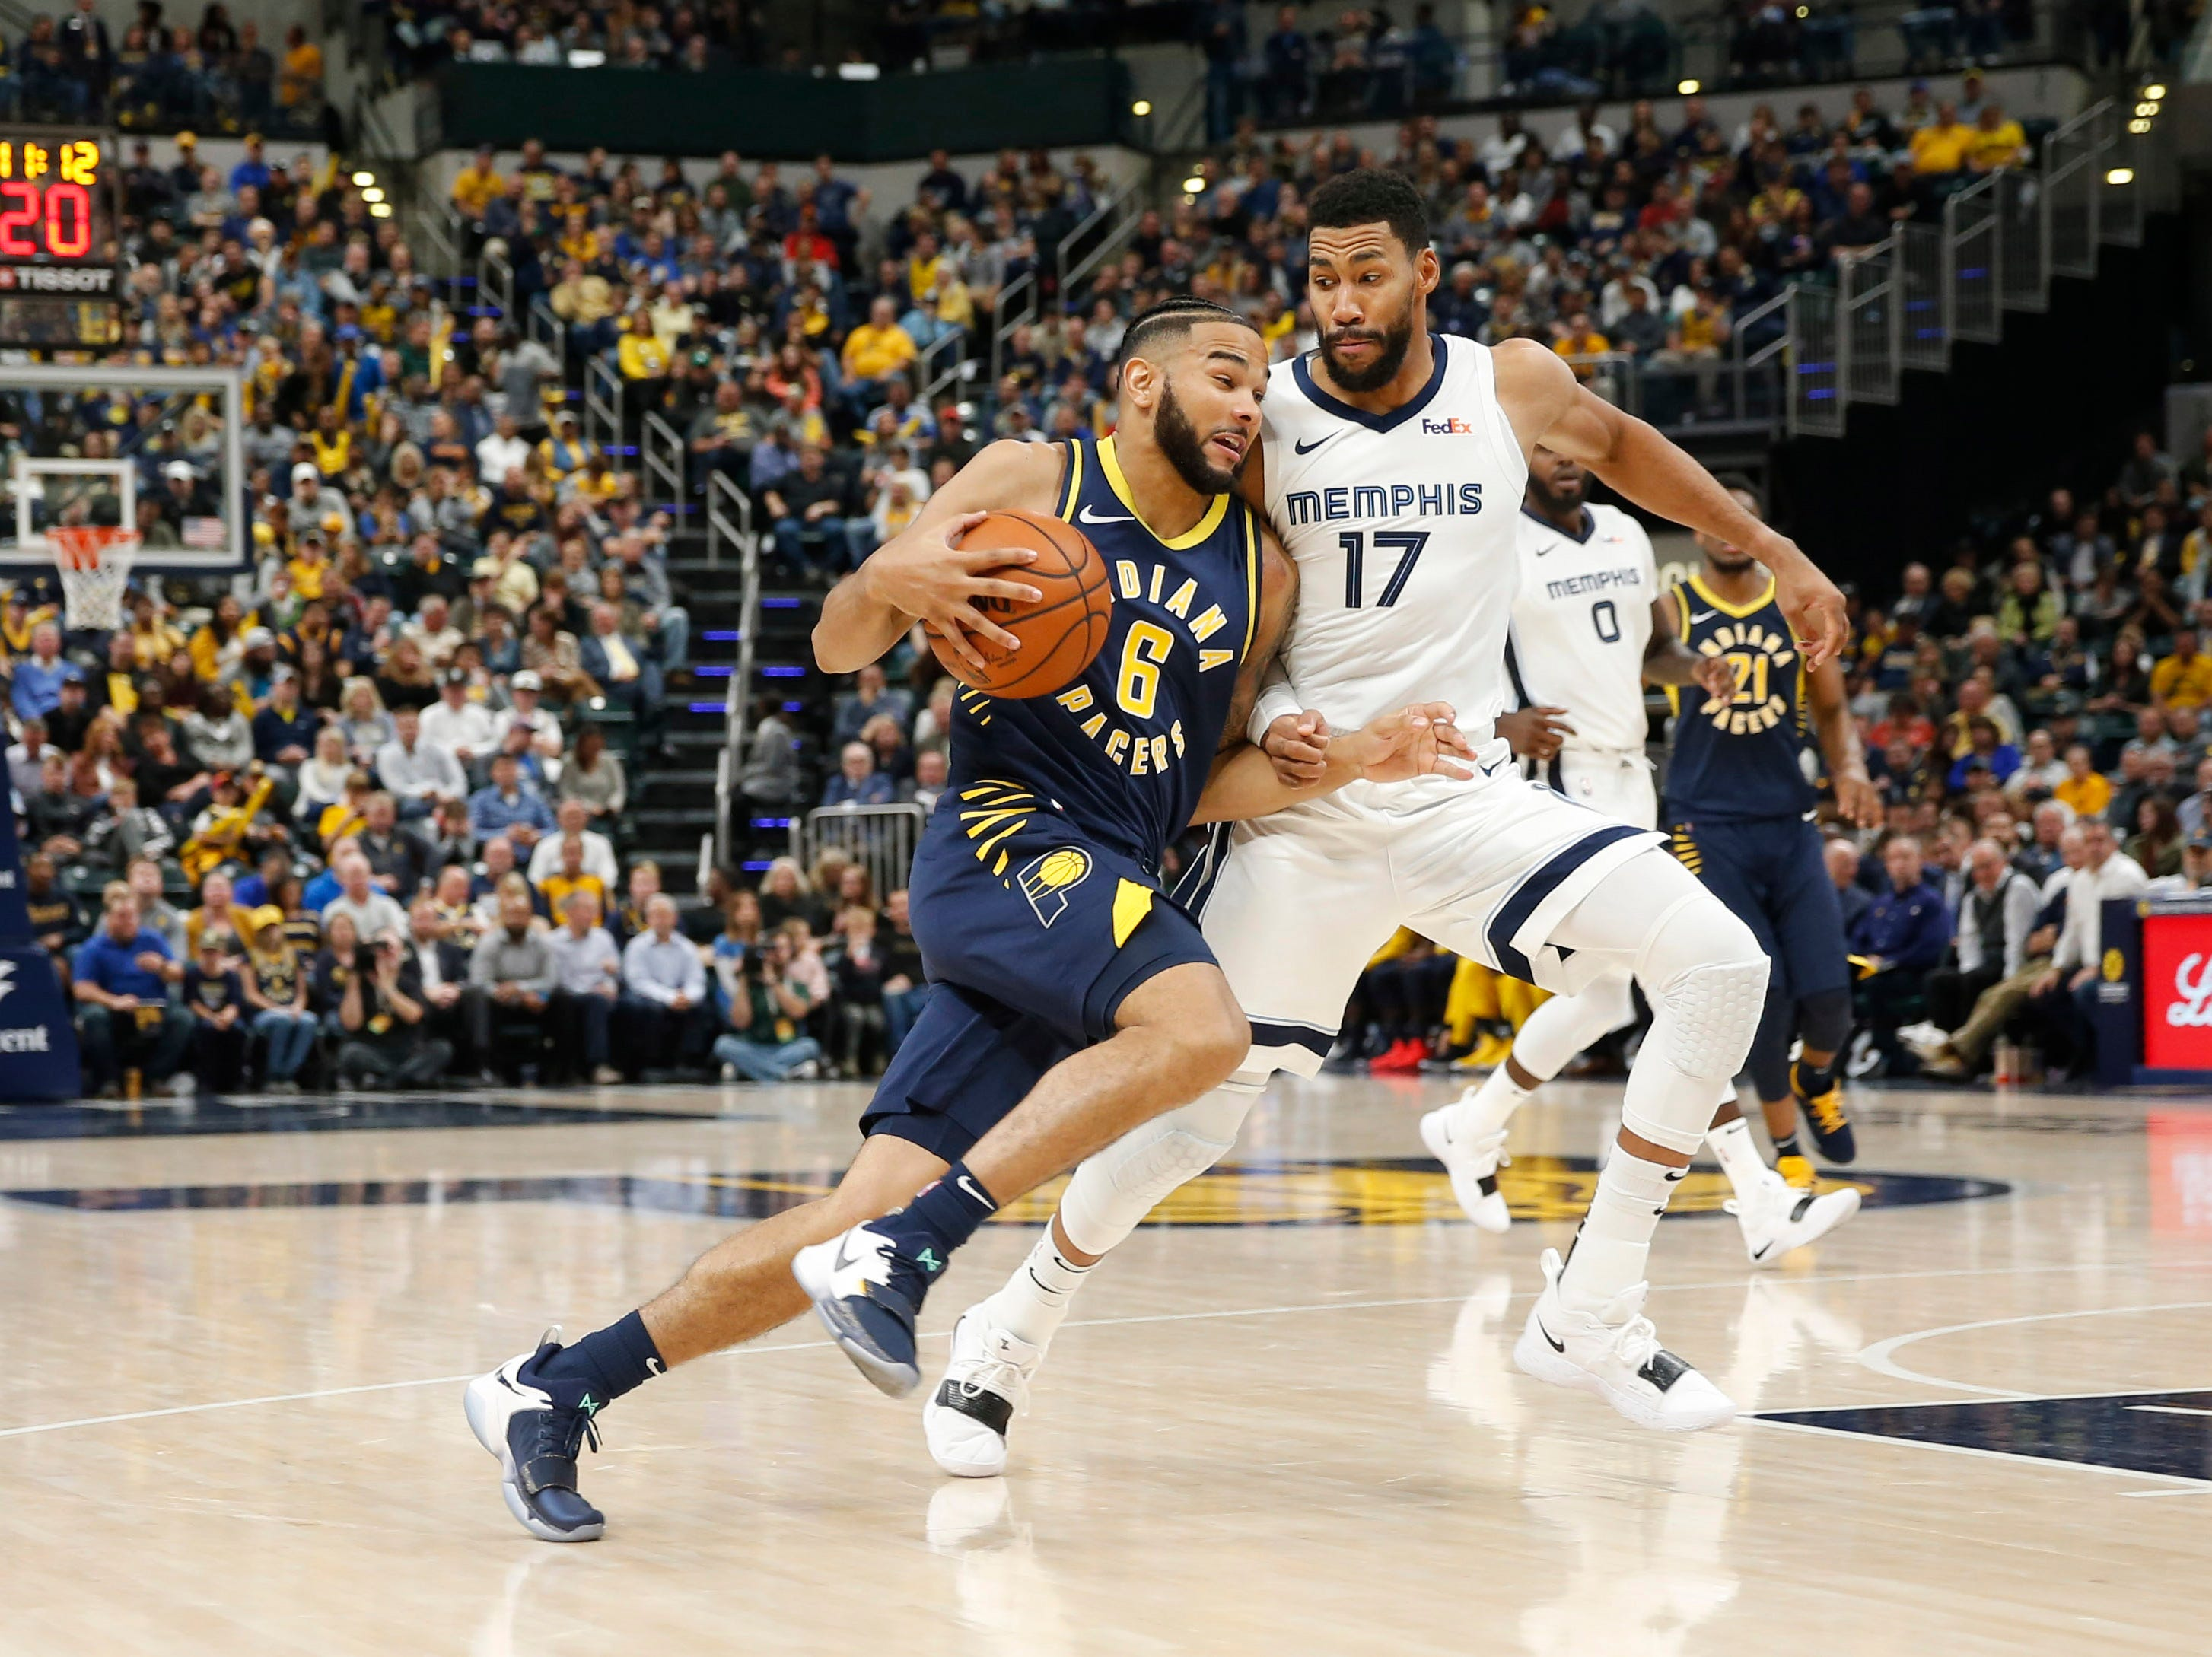 Oct 17, 2018; Indianapolis, IN, USA; Indiana Pacers guard Cory Joseph (6) drives to the basket against Memphis Grizzlies forward Garrett Temple (17) during the fourth quarter at Bankers Life Fieldhouse.